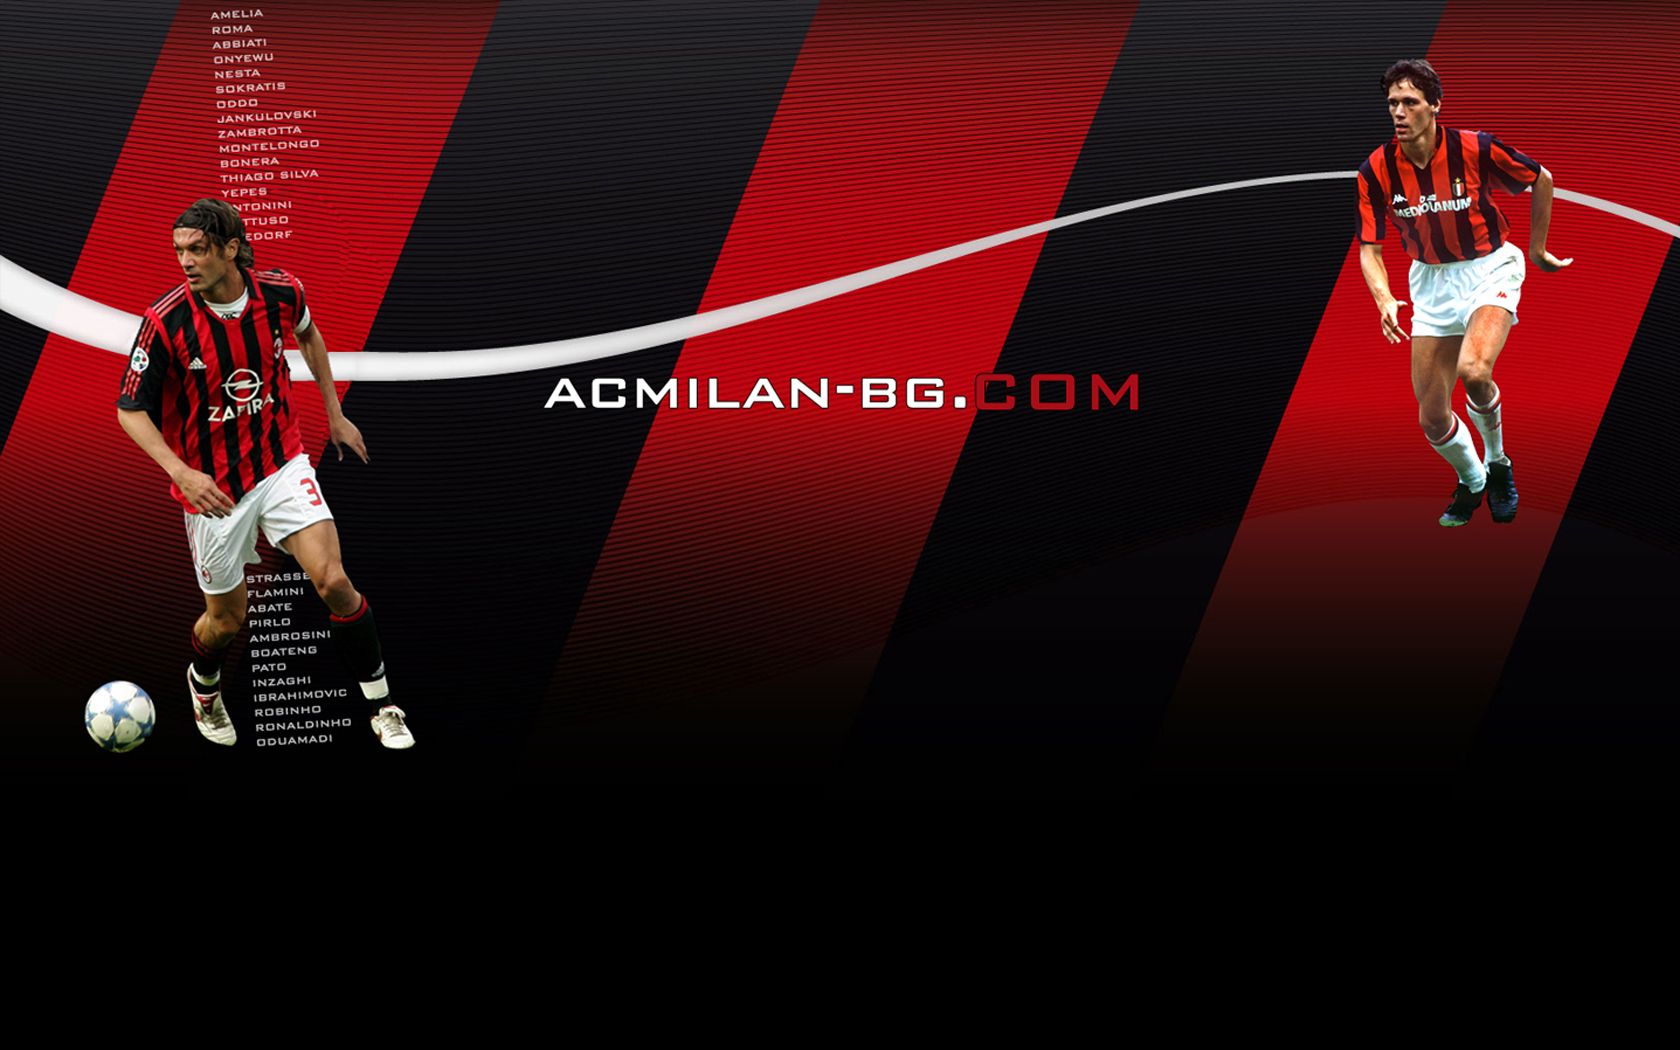 Ac Milan Wallpaper Android Football Wallpaper 1680x1050